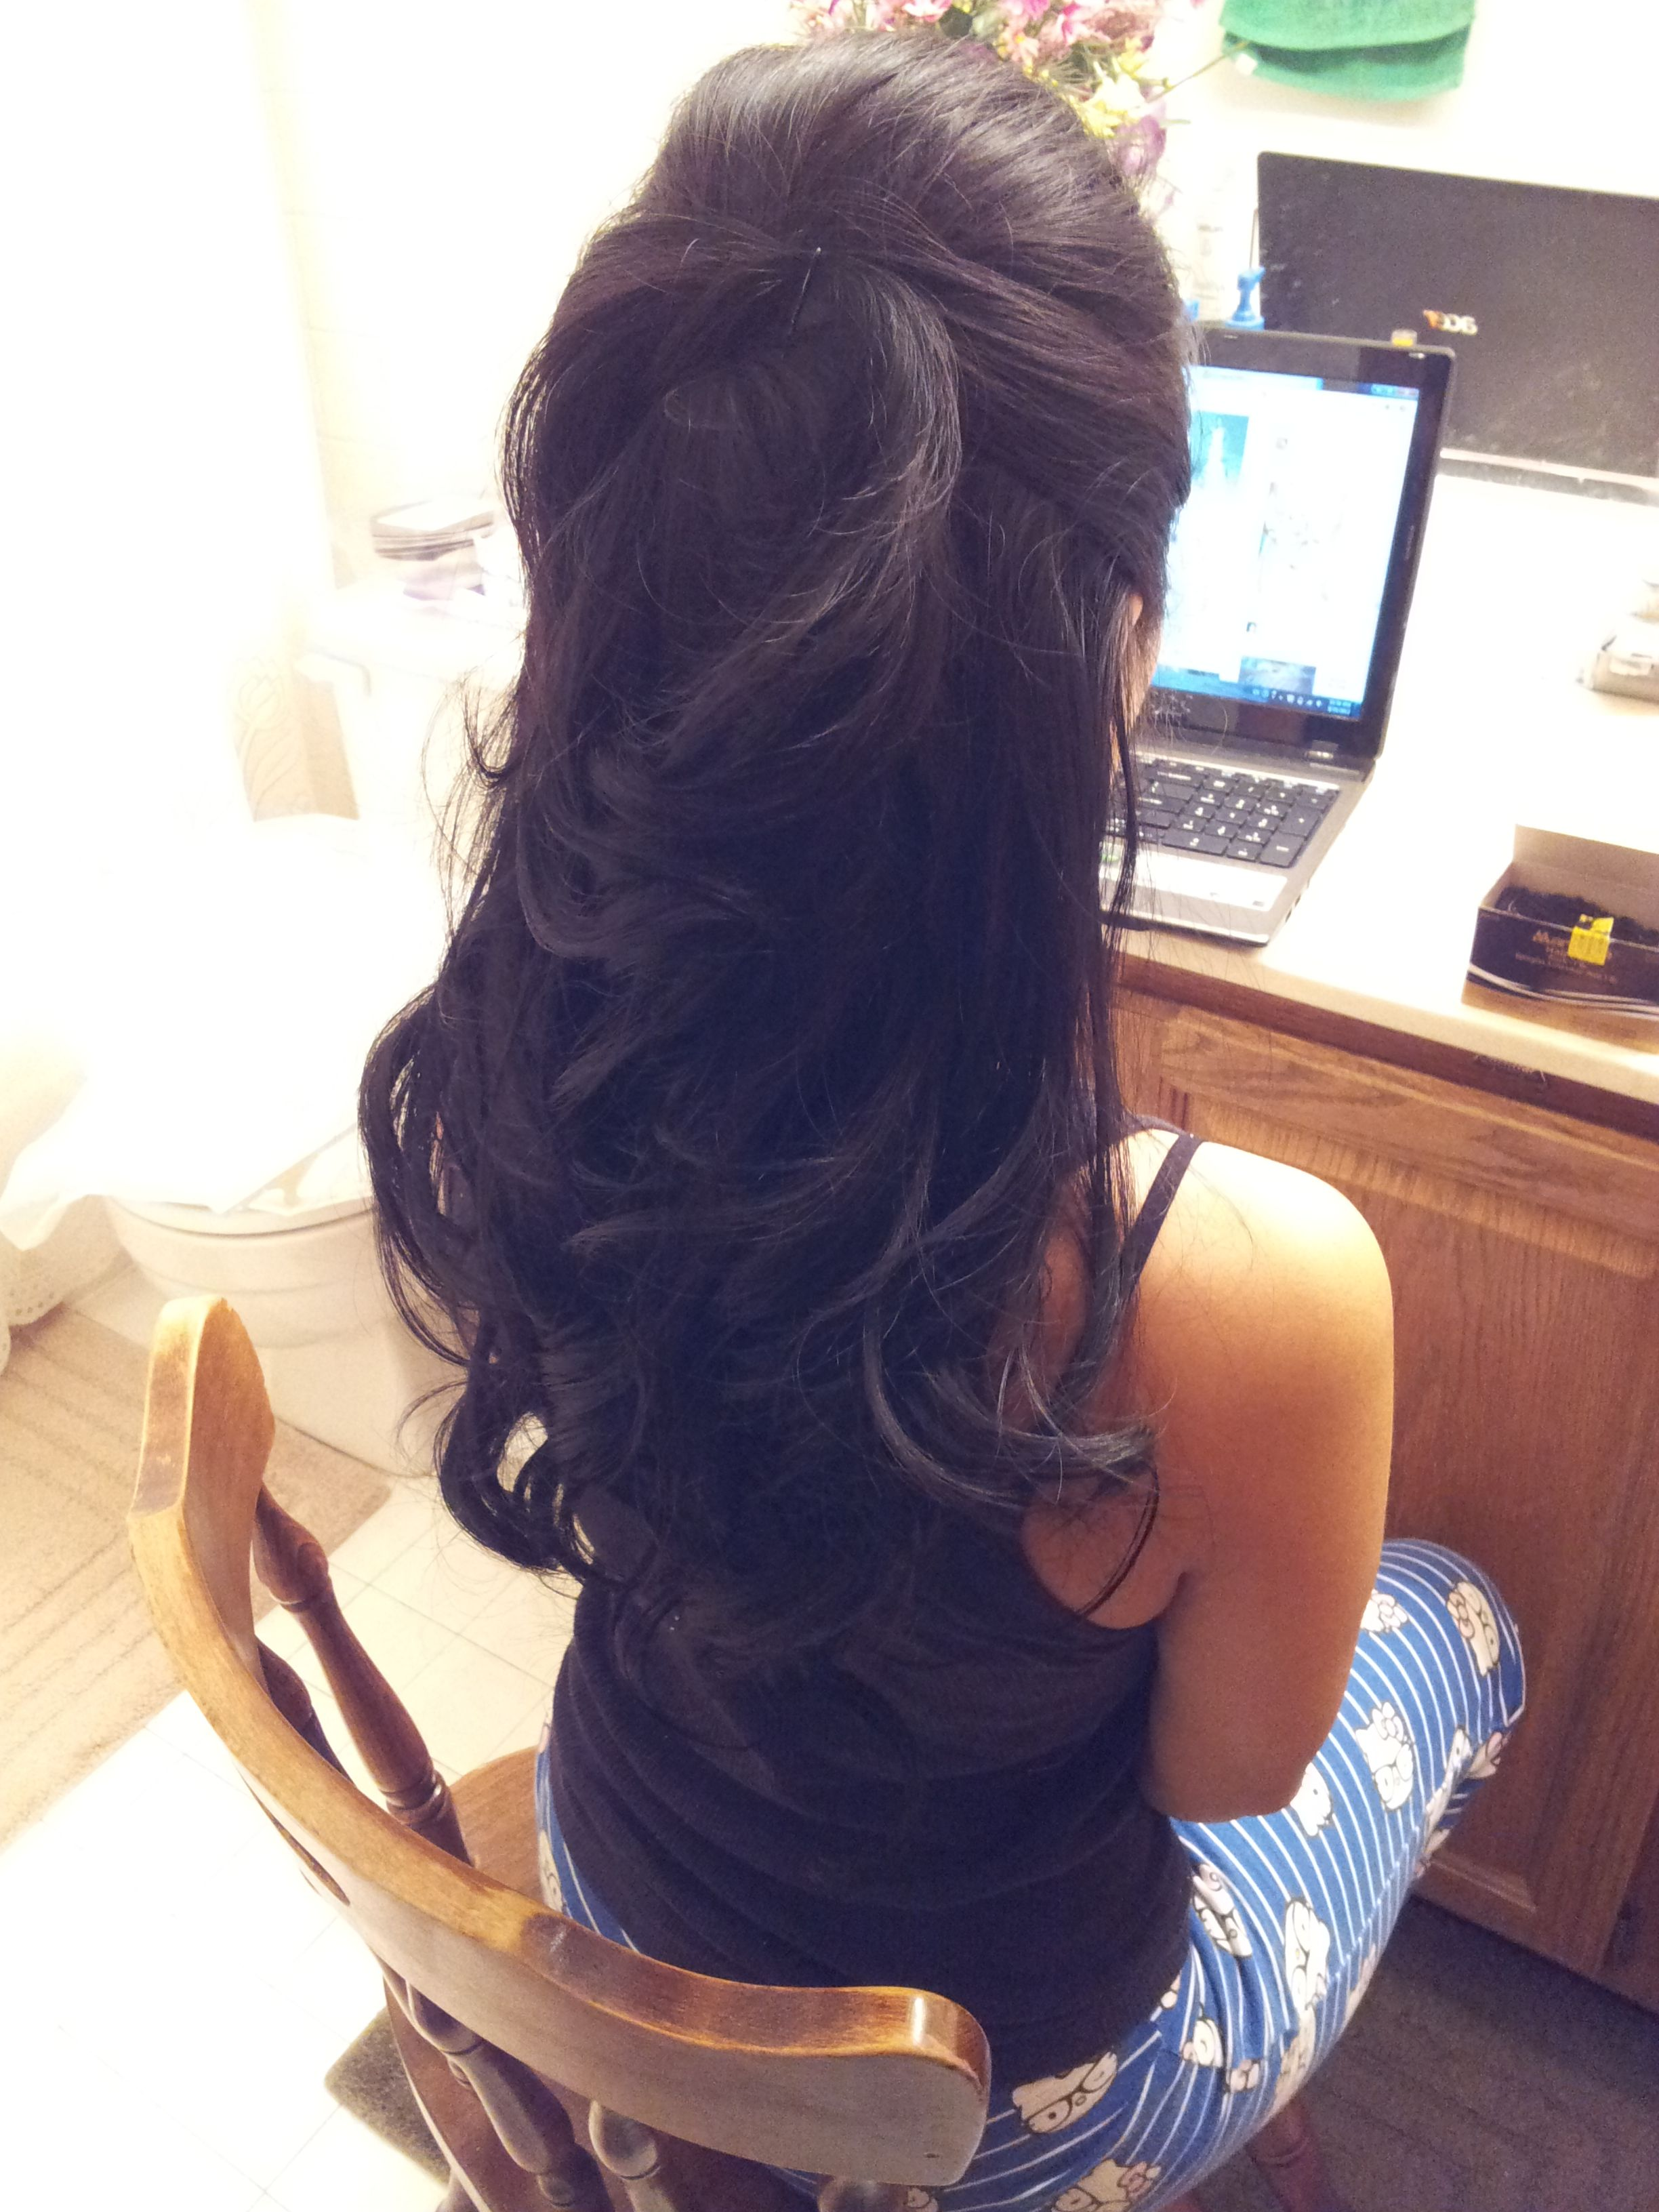 Courtesy of my maid of honor wedding day hair trial uc the